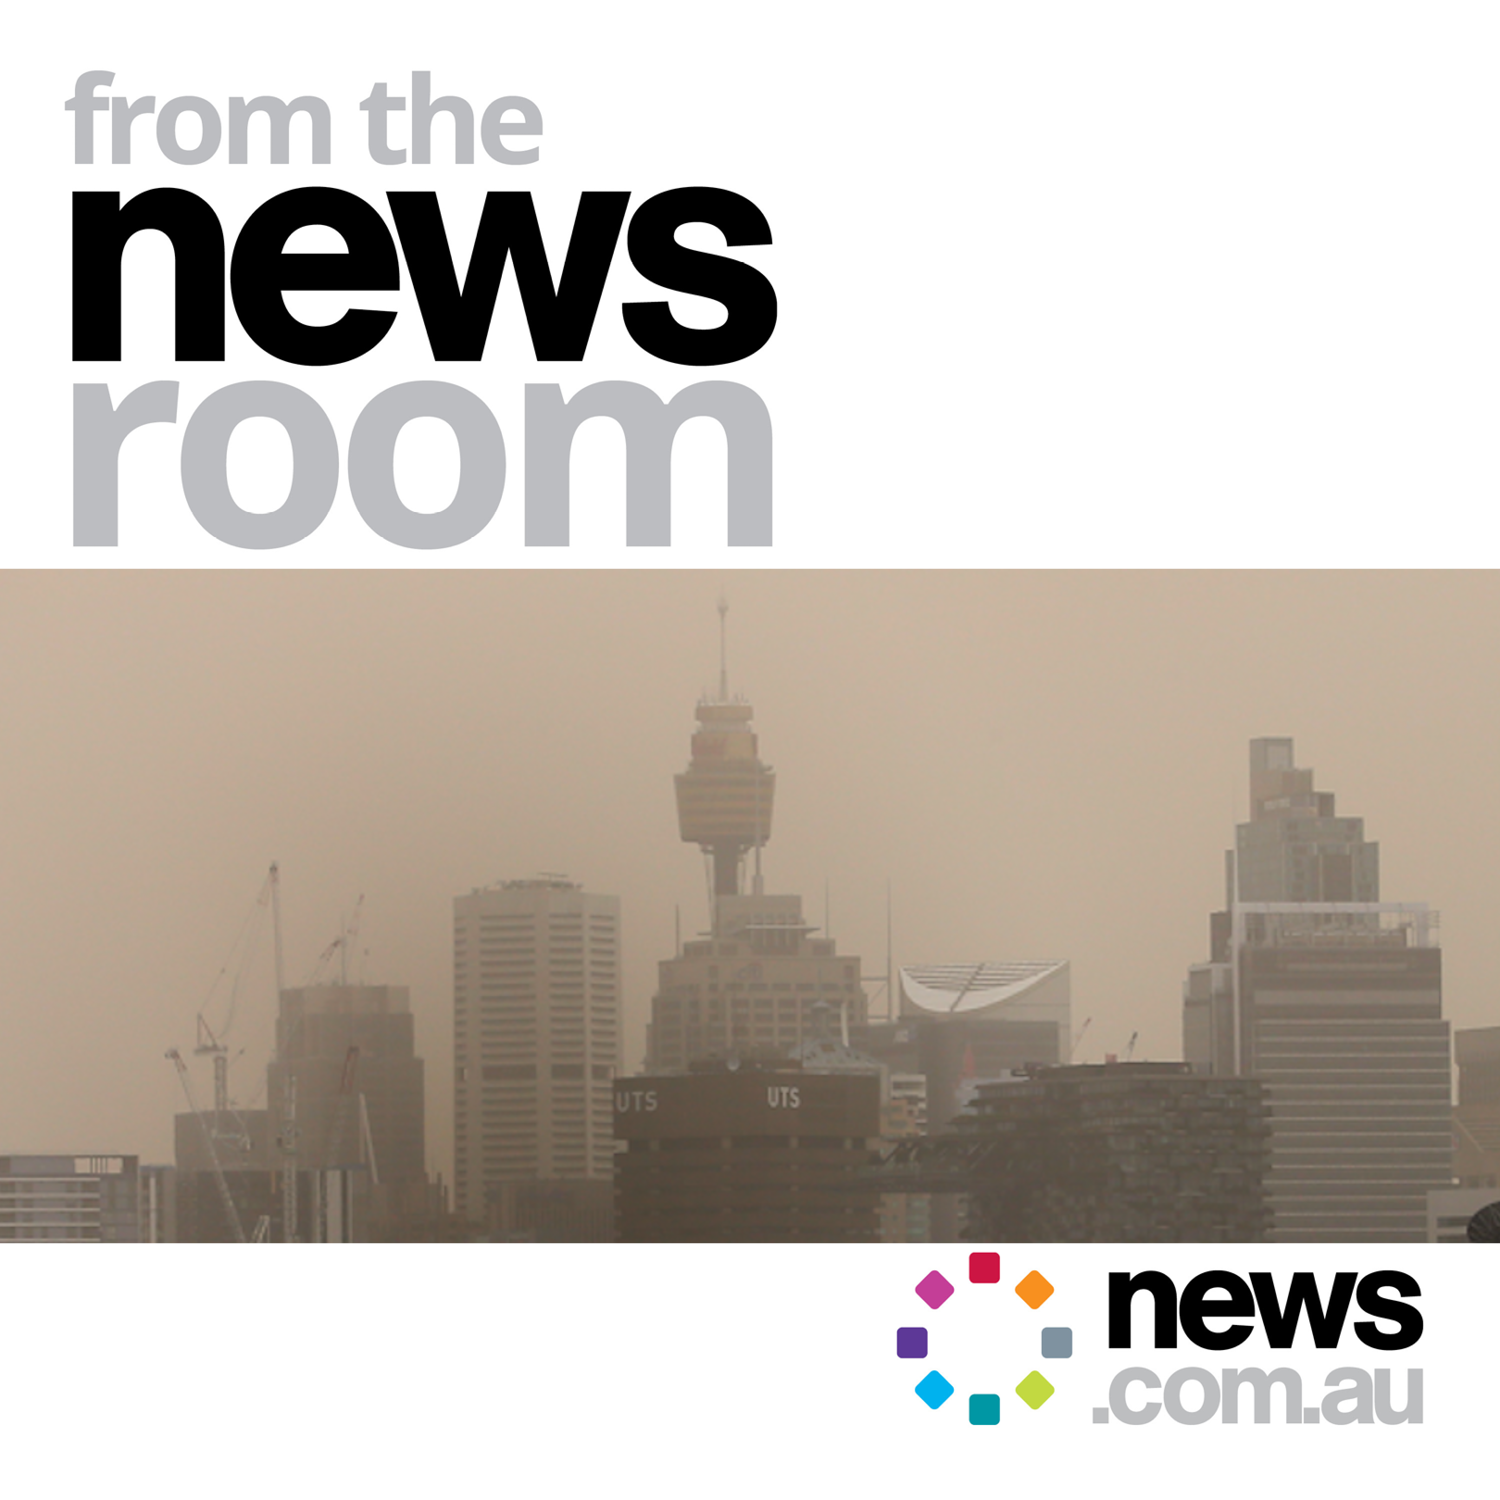 Friday November 23 - Concerns remain over Sydney air quality after yesterdays dust storm, Lucy Zelic receives ridiculous backlash over football World Cup commentary, a look at the biggest stories of the week and what is coming up on news.com.au